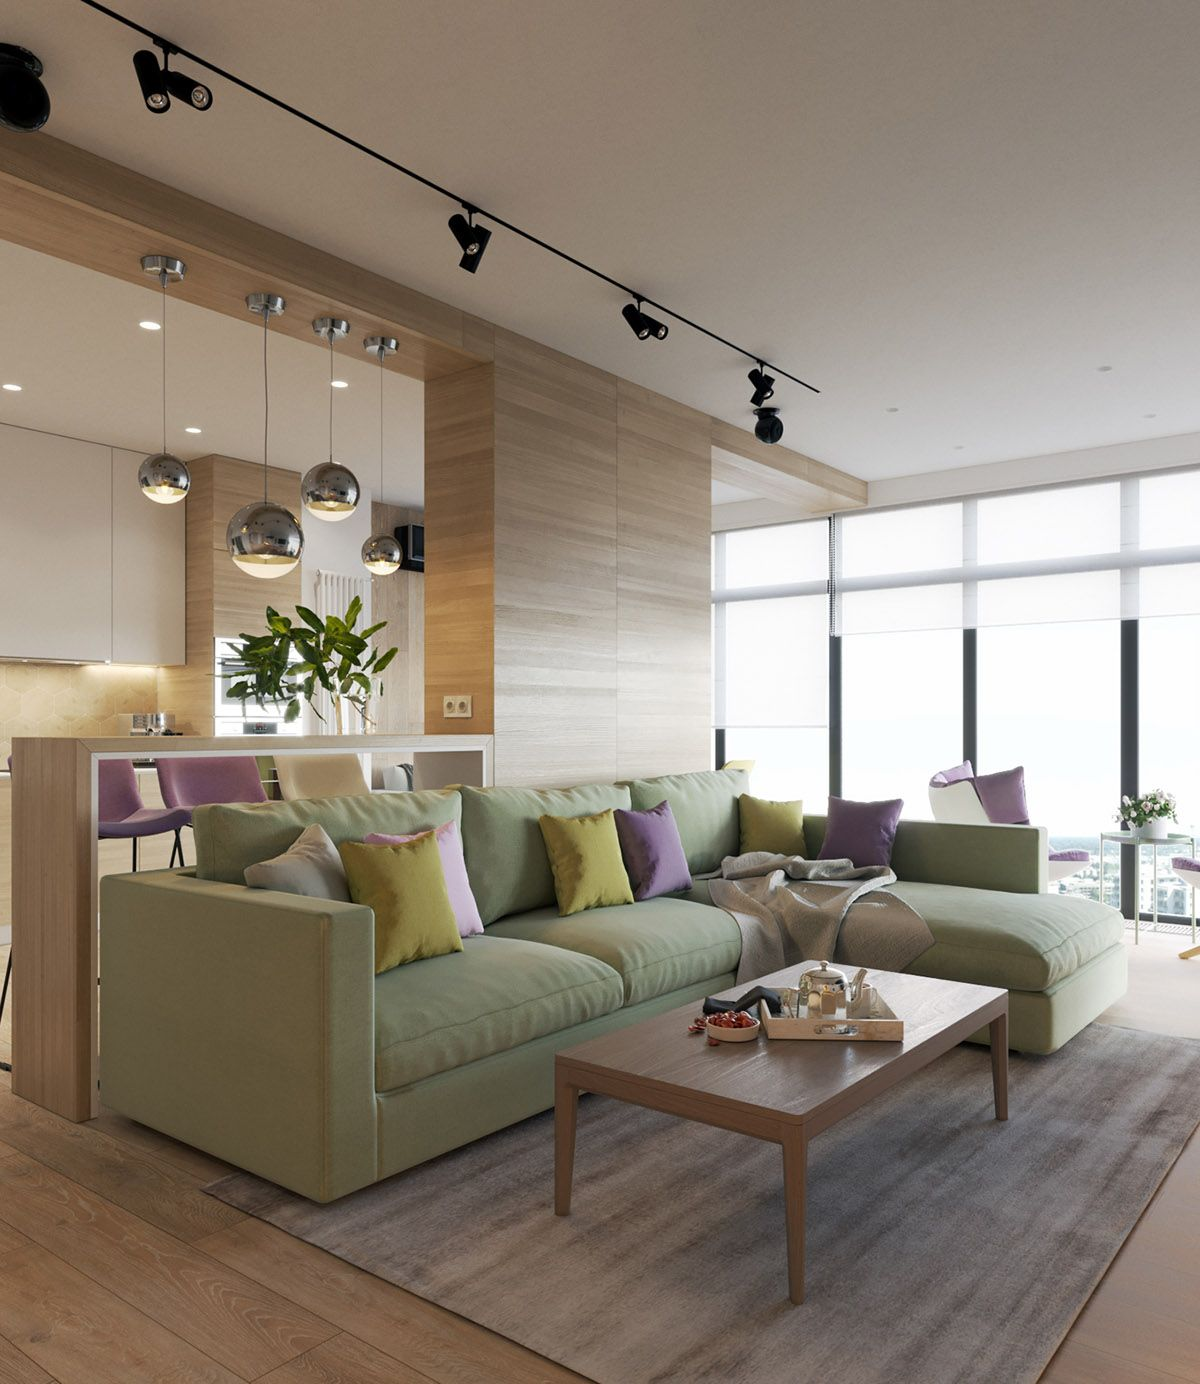 Modern home interior colors pastel accents over expansive light wood in two modern homes